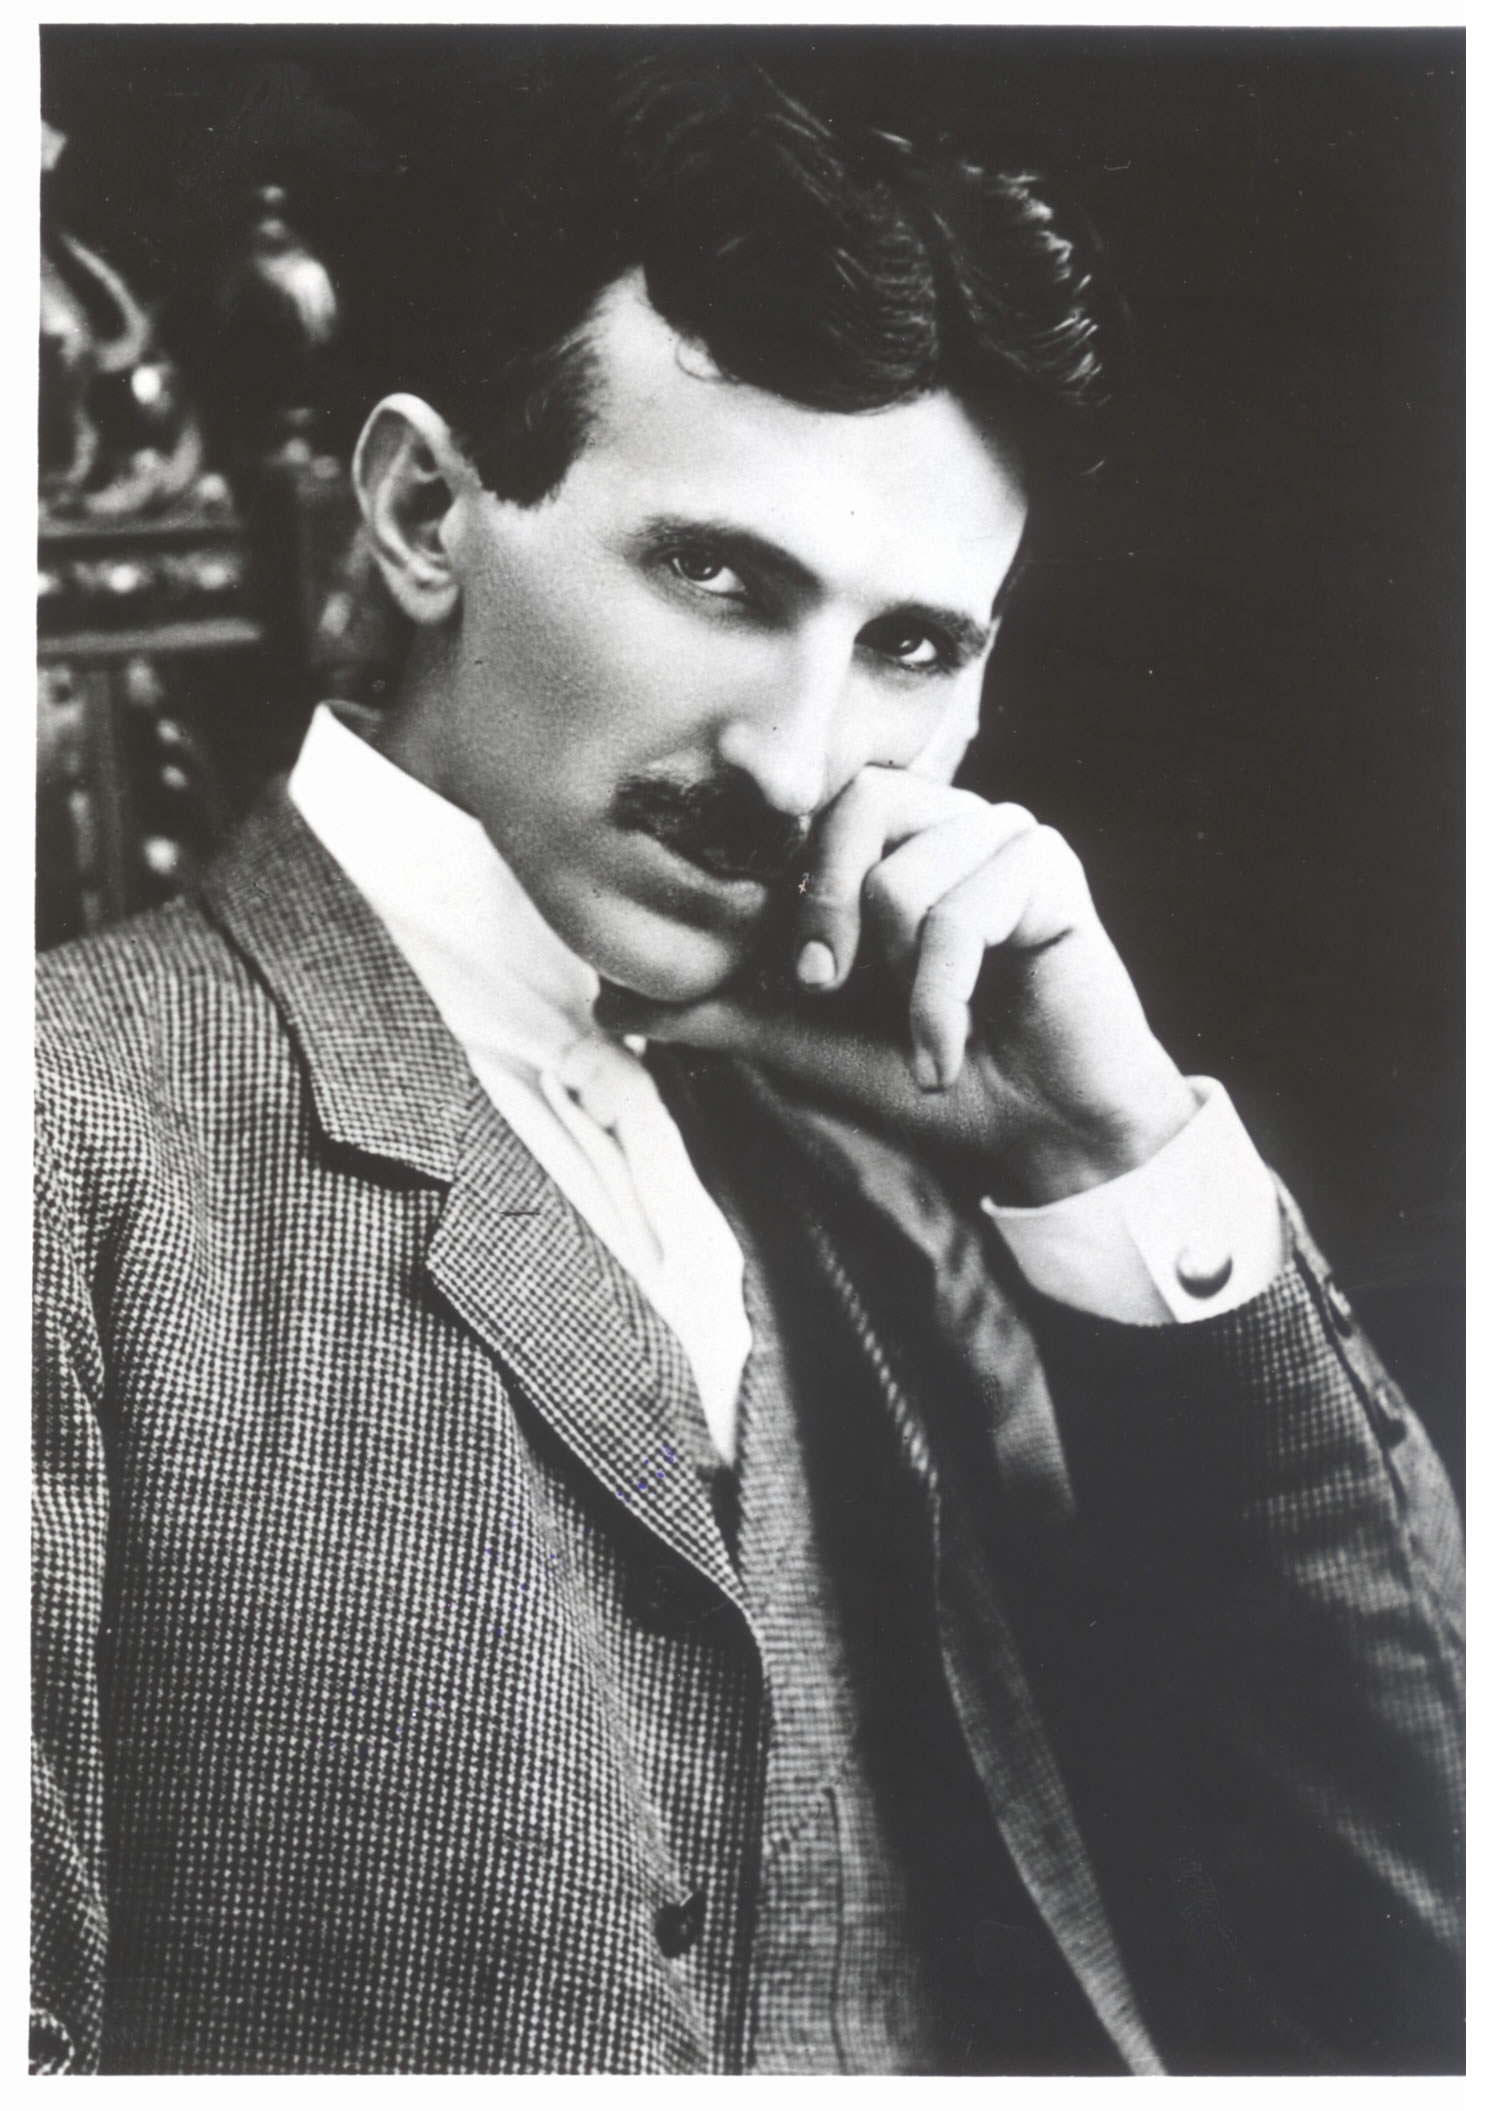 nikola tesla - photo #24